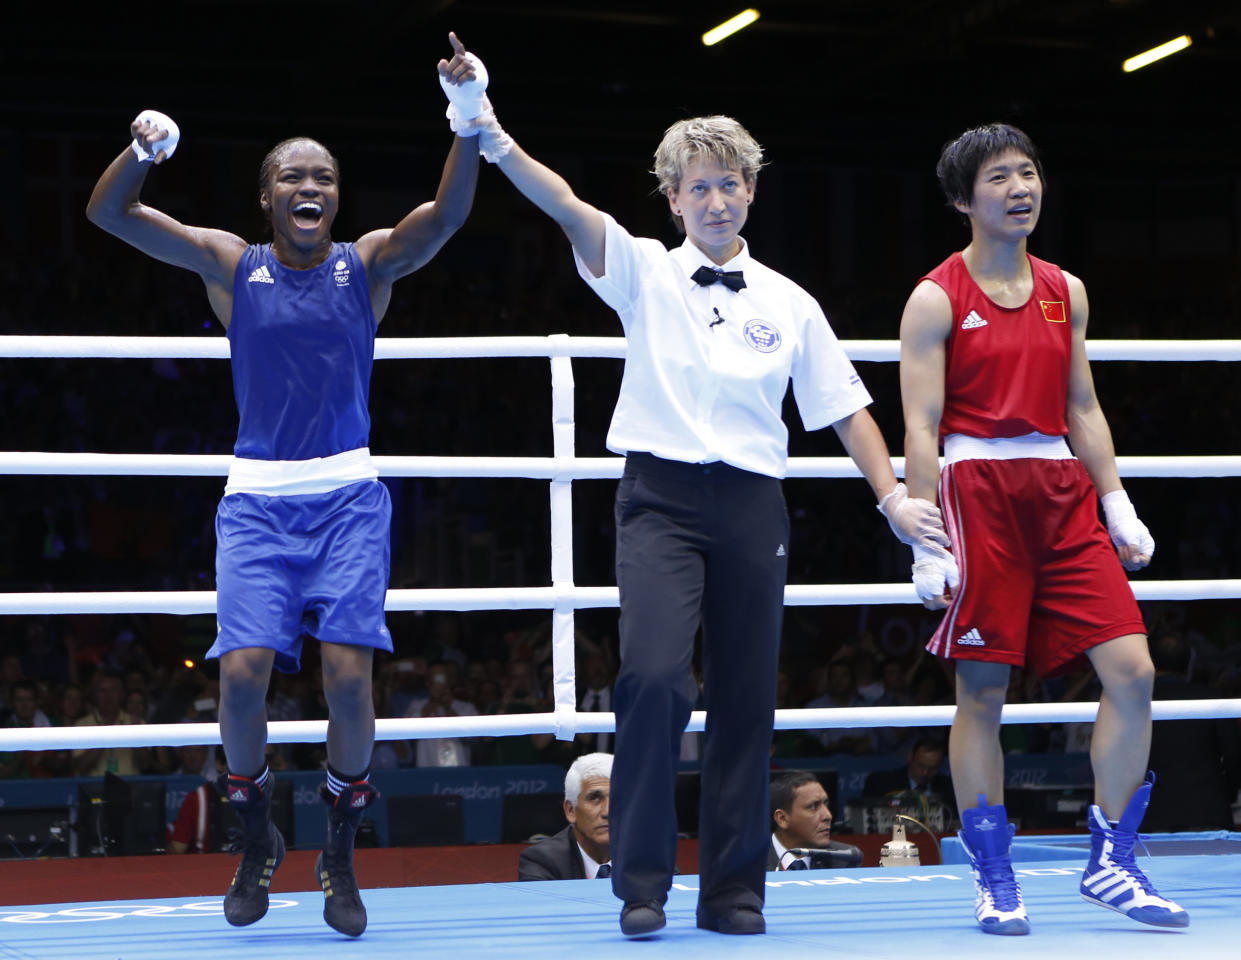 Britain's Nicola Adams (L) reacts as she is declared the winner over China's Ren Cancan during their Women's Fly (51kg) gold medal boxing match at the London Olympic Games August 9, 2012.       REUTERS/Murad Sezer (BRITAIN  - Tags: SPORT BOXING OLYMPICS TPX IMAGES OF THE DAY)